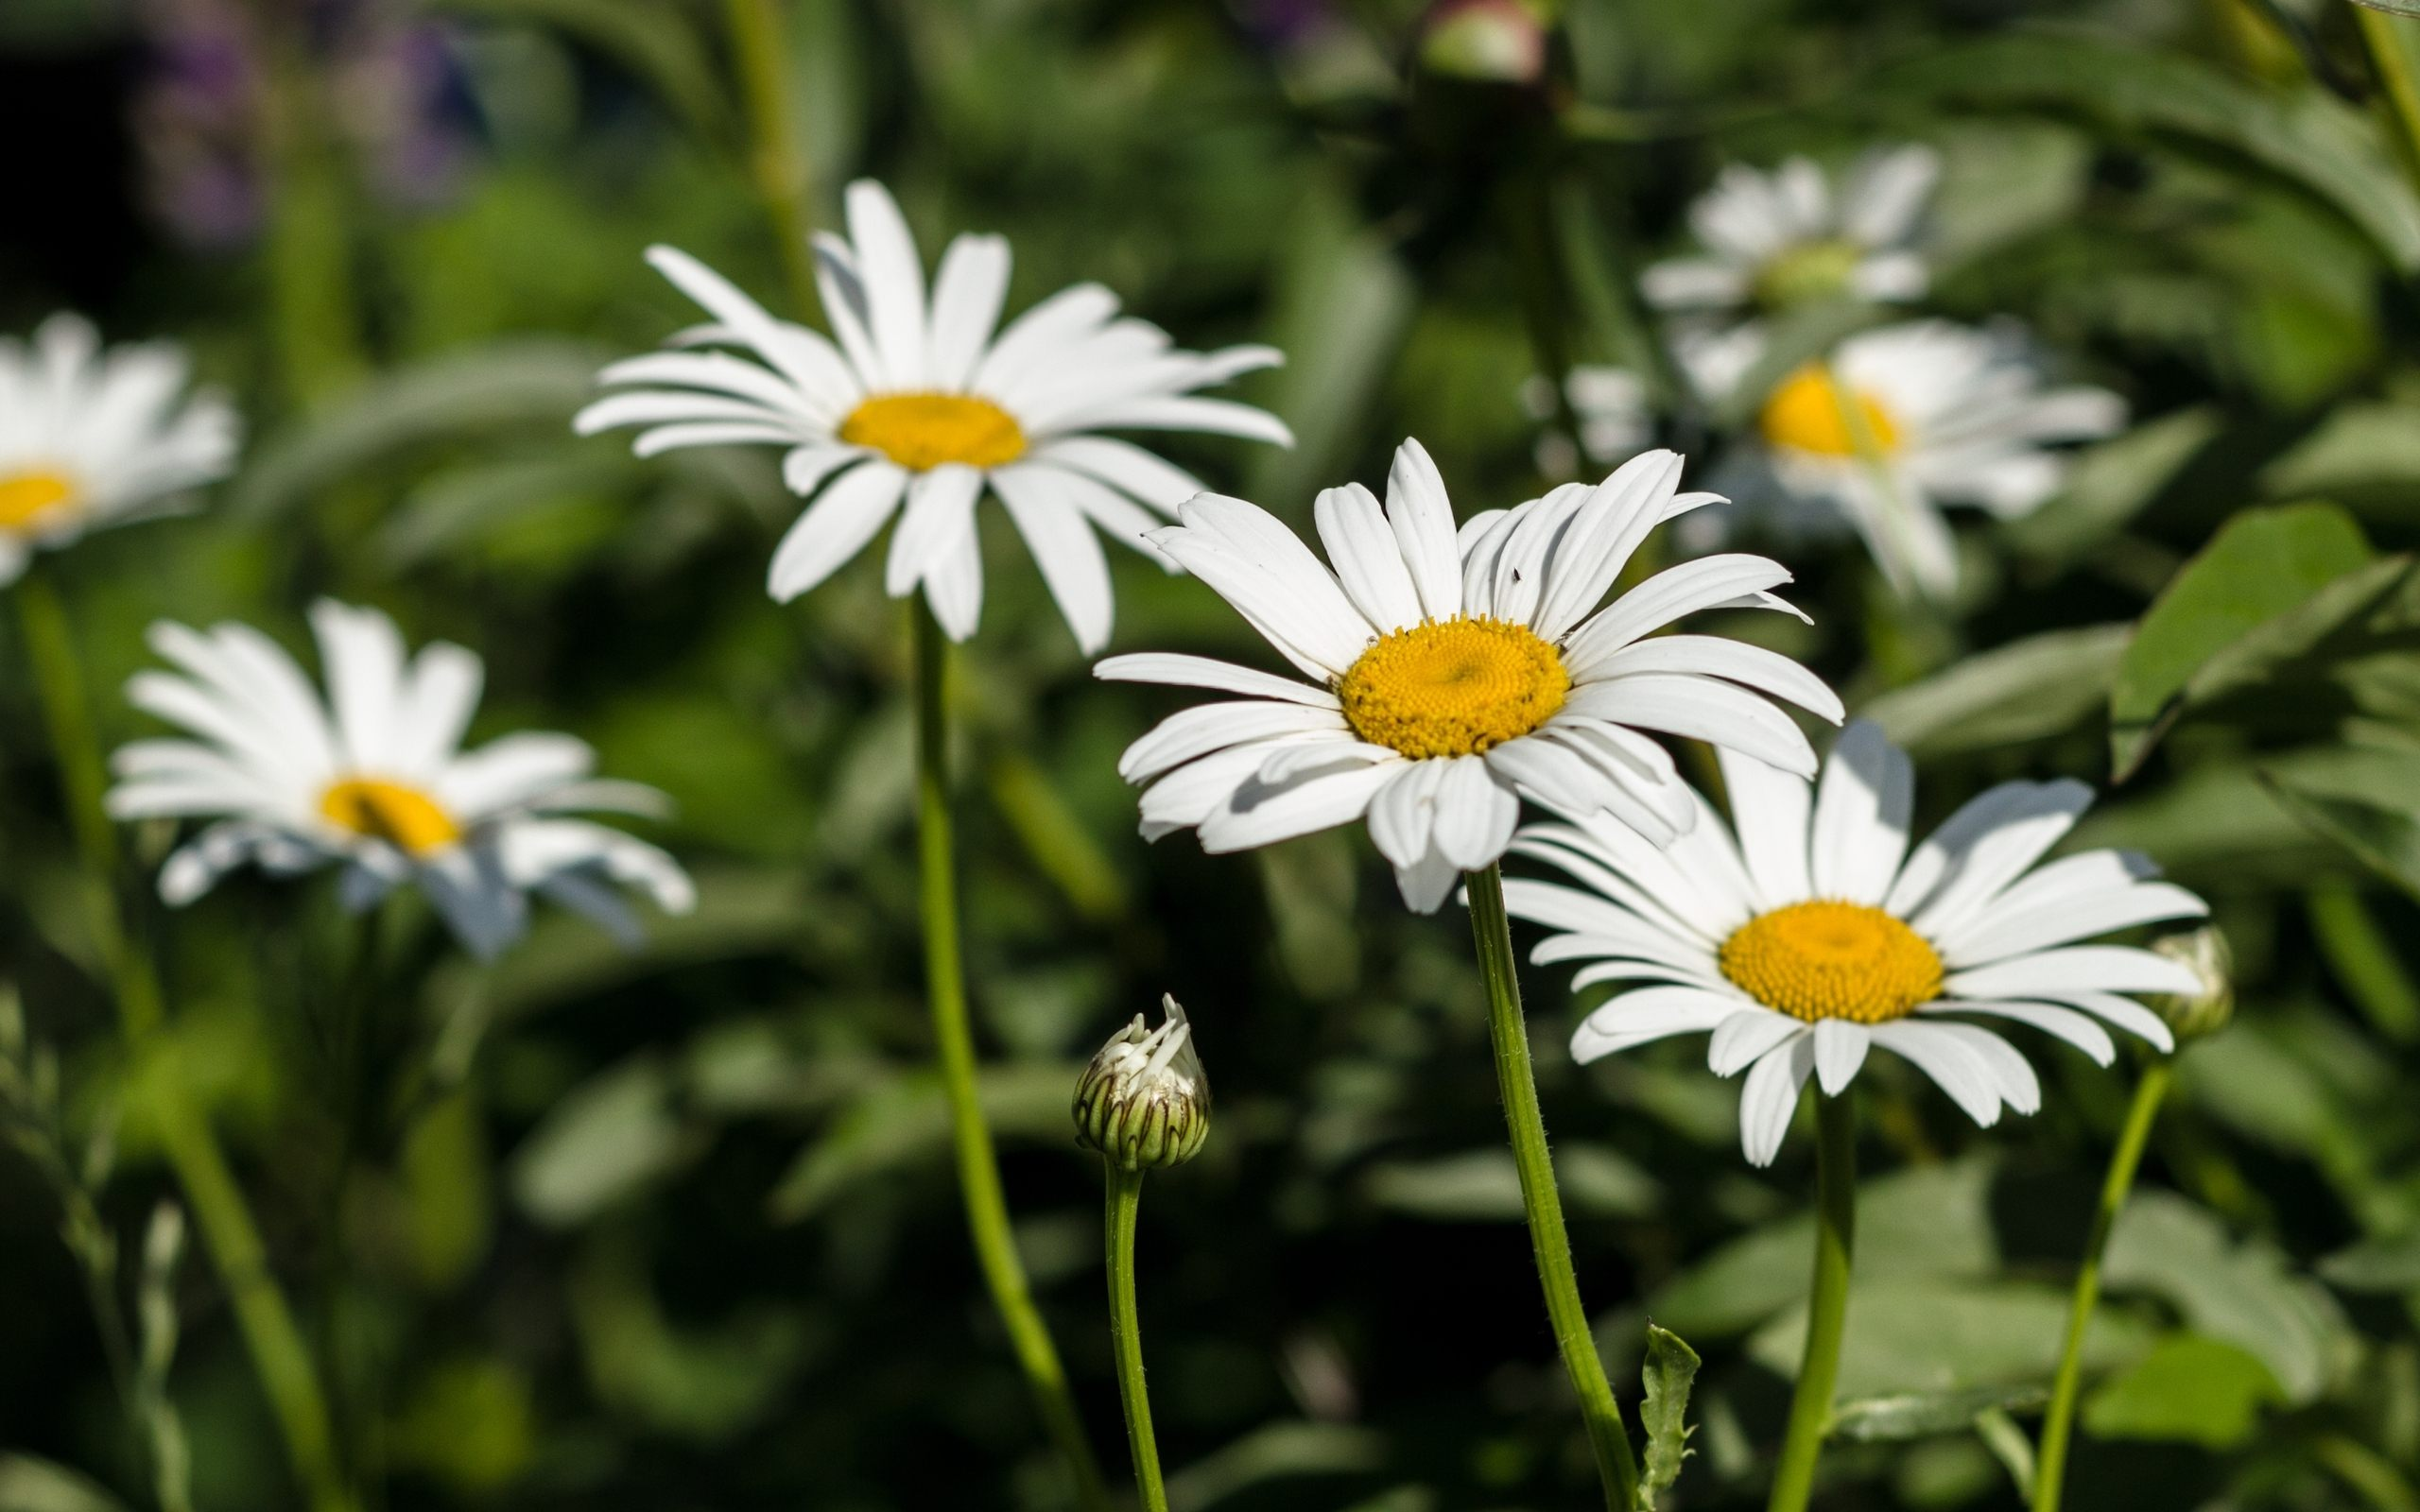 Group Of White Daisy Flower Download Images Download